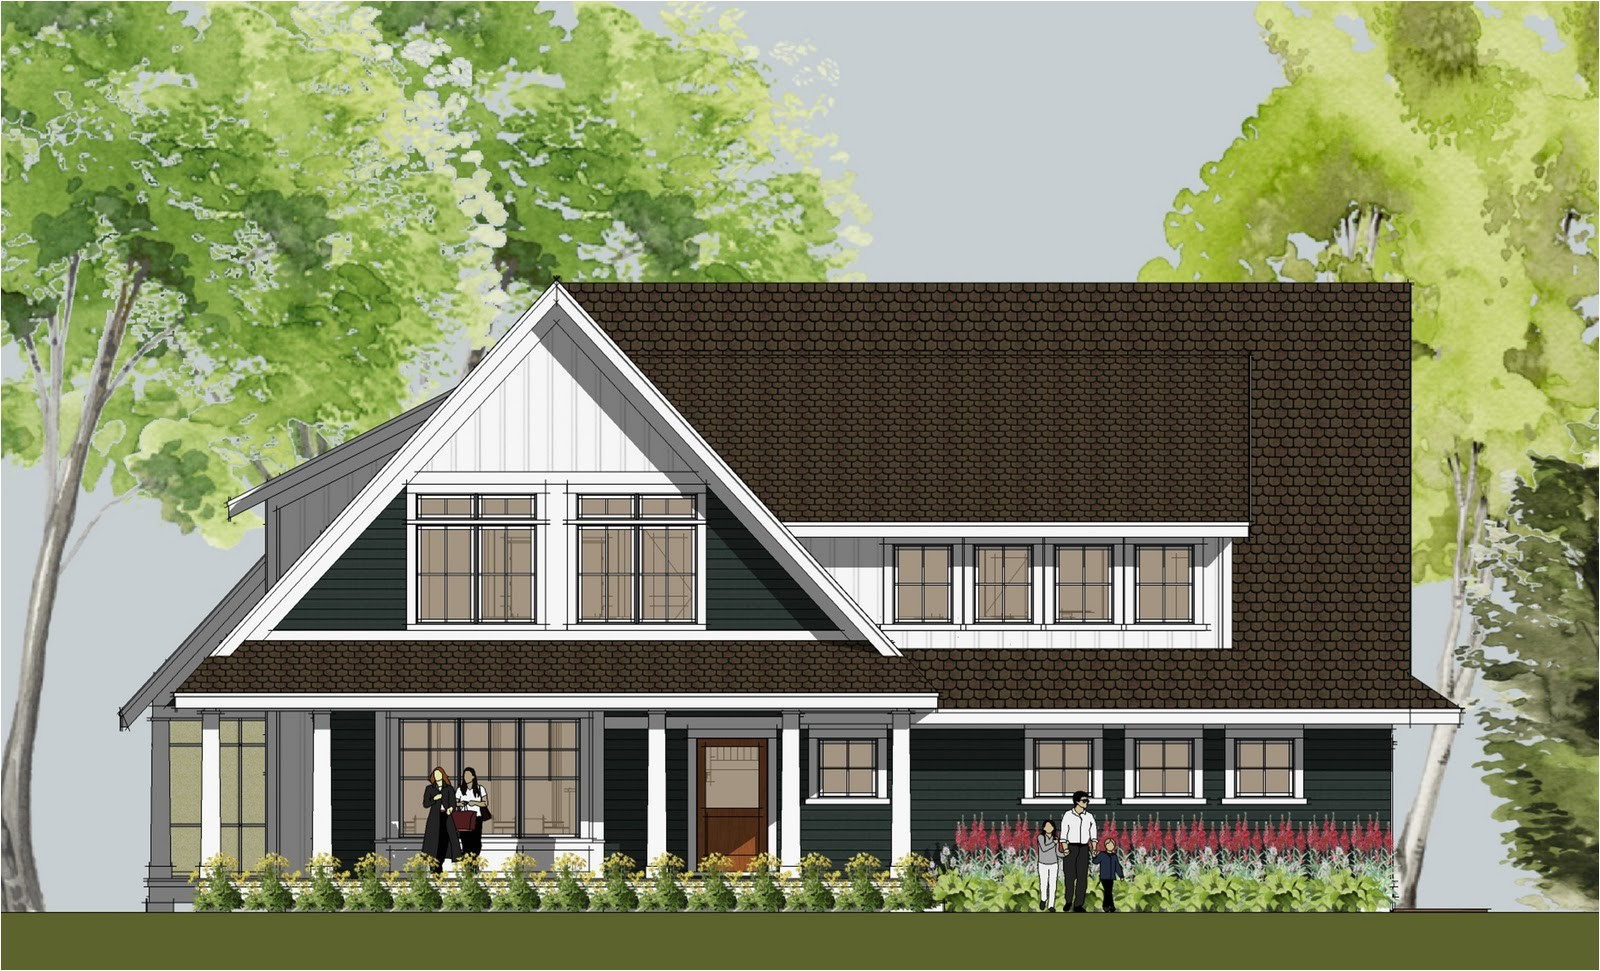 simple elegant house plans ideas photo gallery